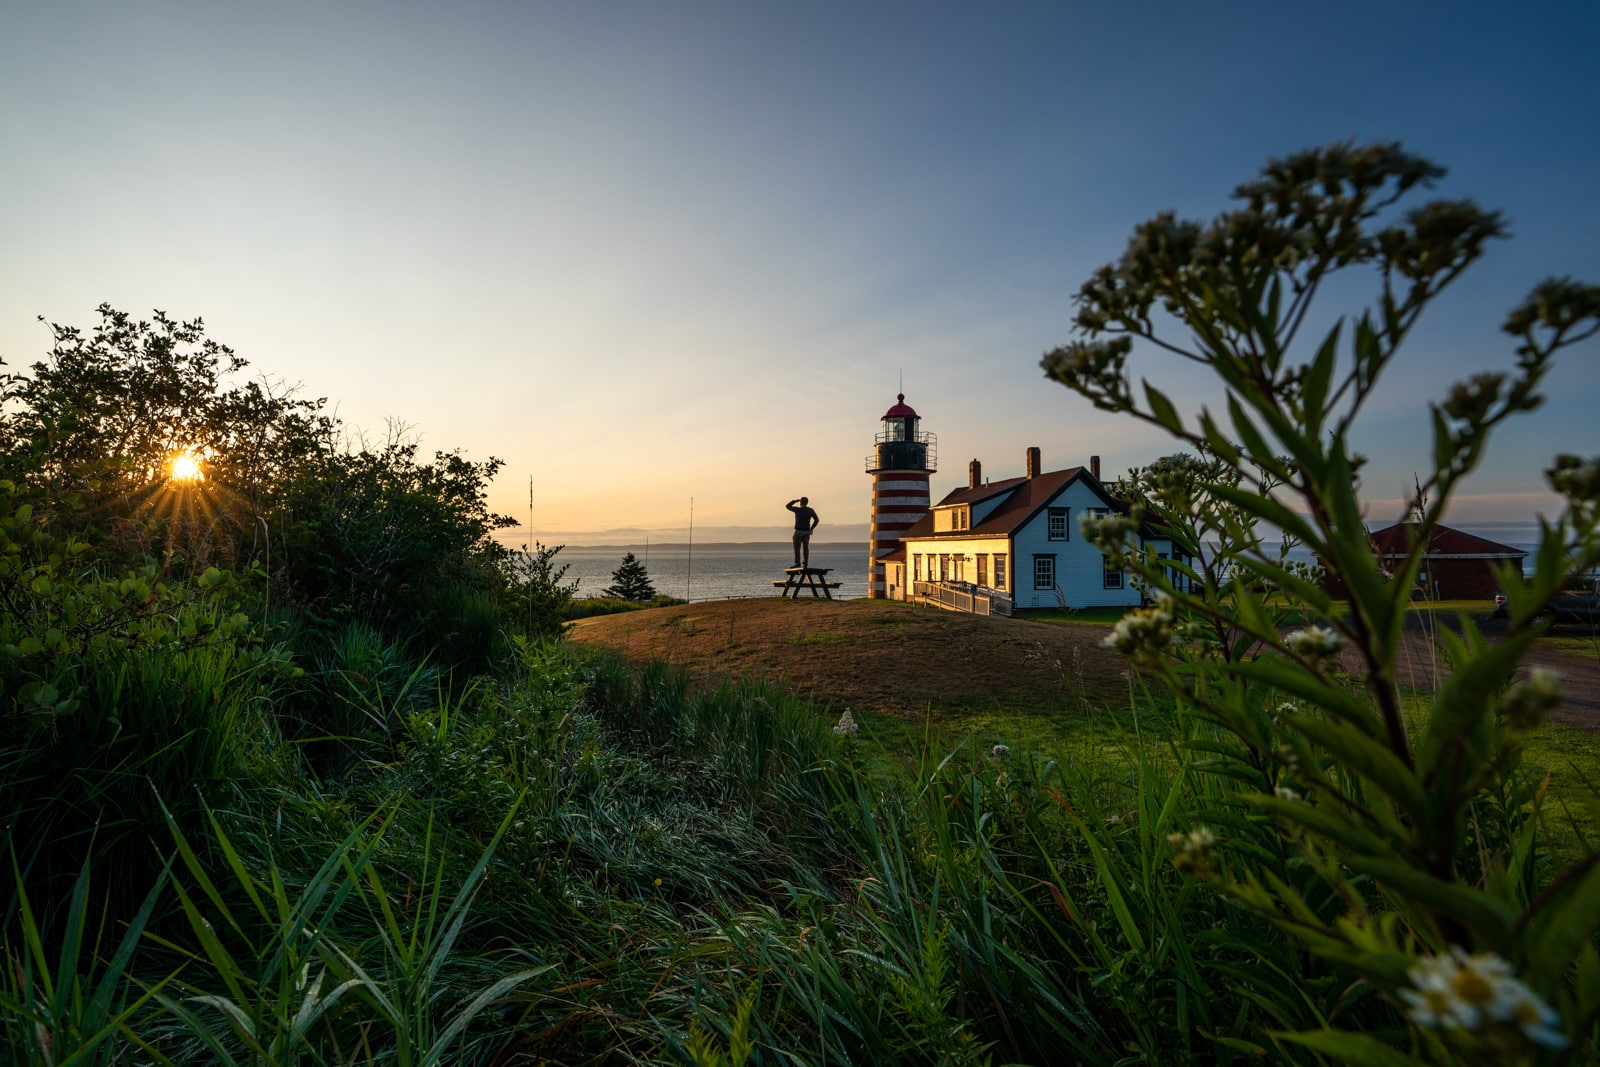 Watching sunrise at the West Quoddy Head lighthouse in Lubec, Maine - Lost With Purpose travel blog